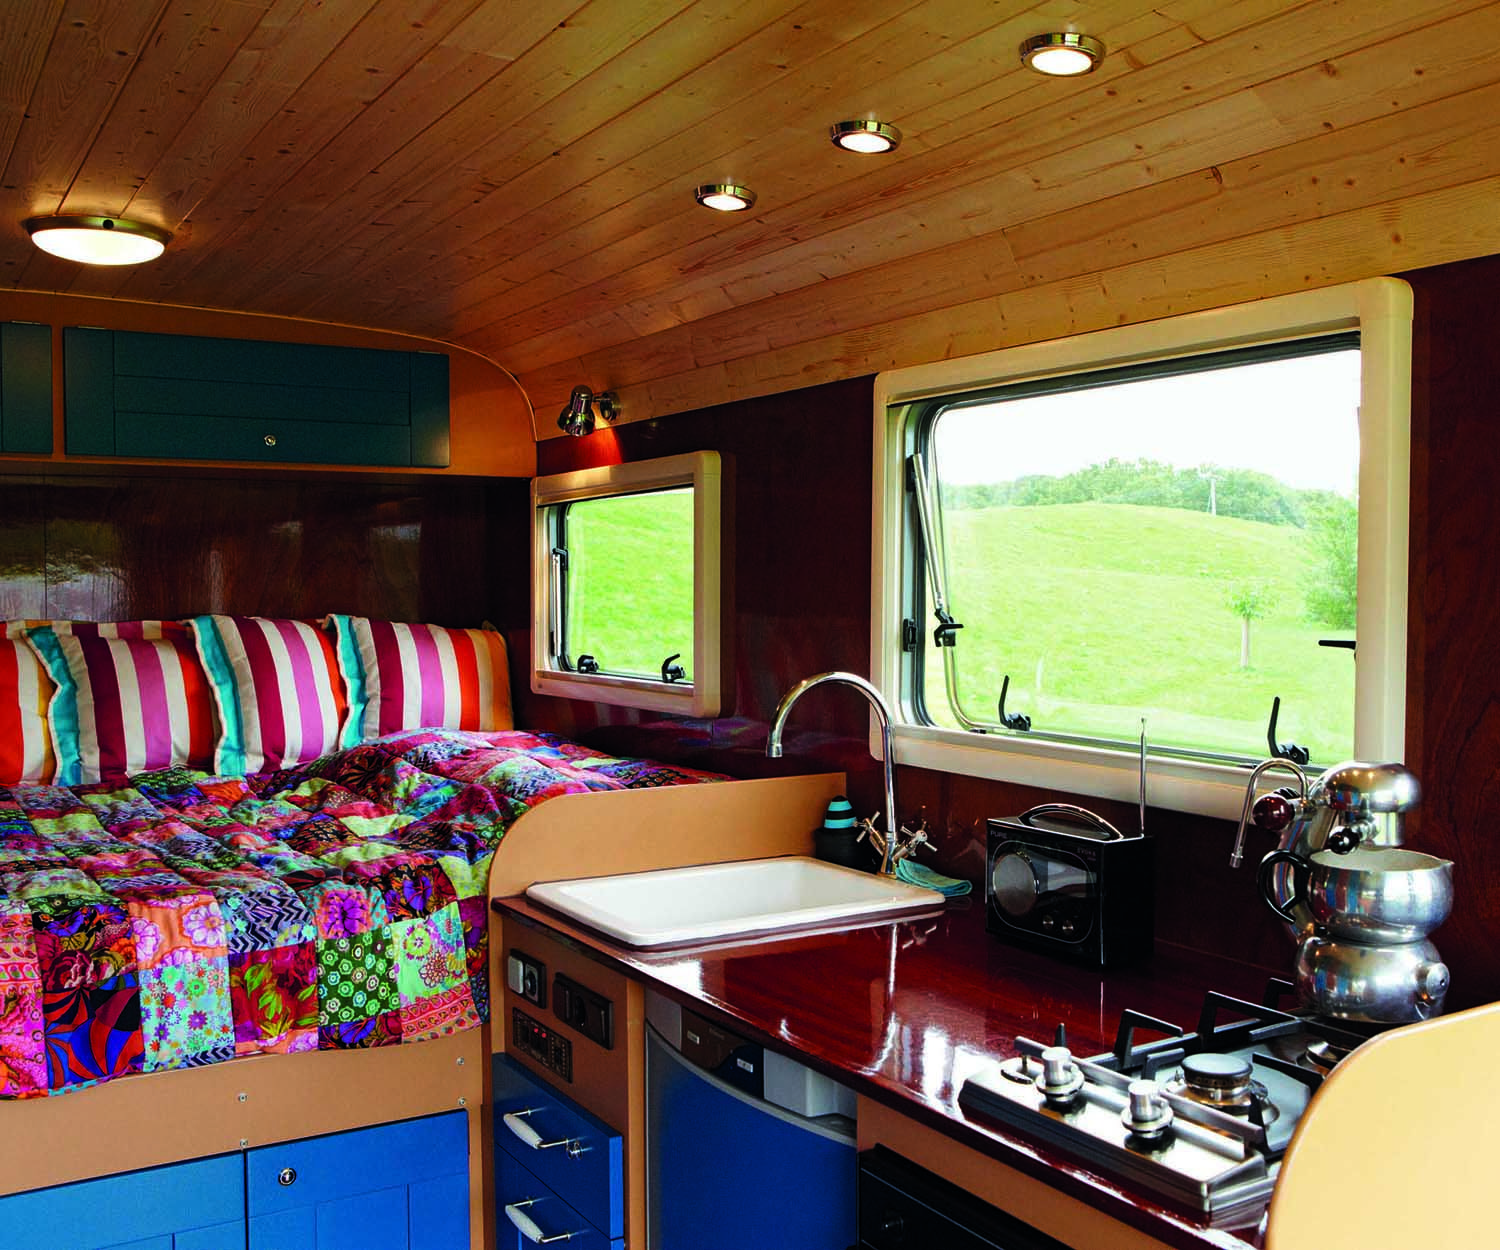 Amazing Array Of Quirky Campervans And Campervan Ownersthink Patchwork Quilts Fold Out